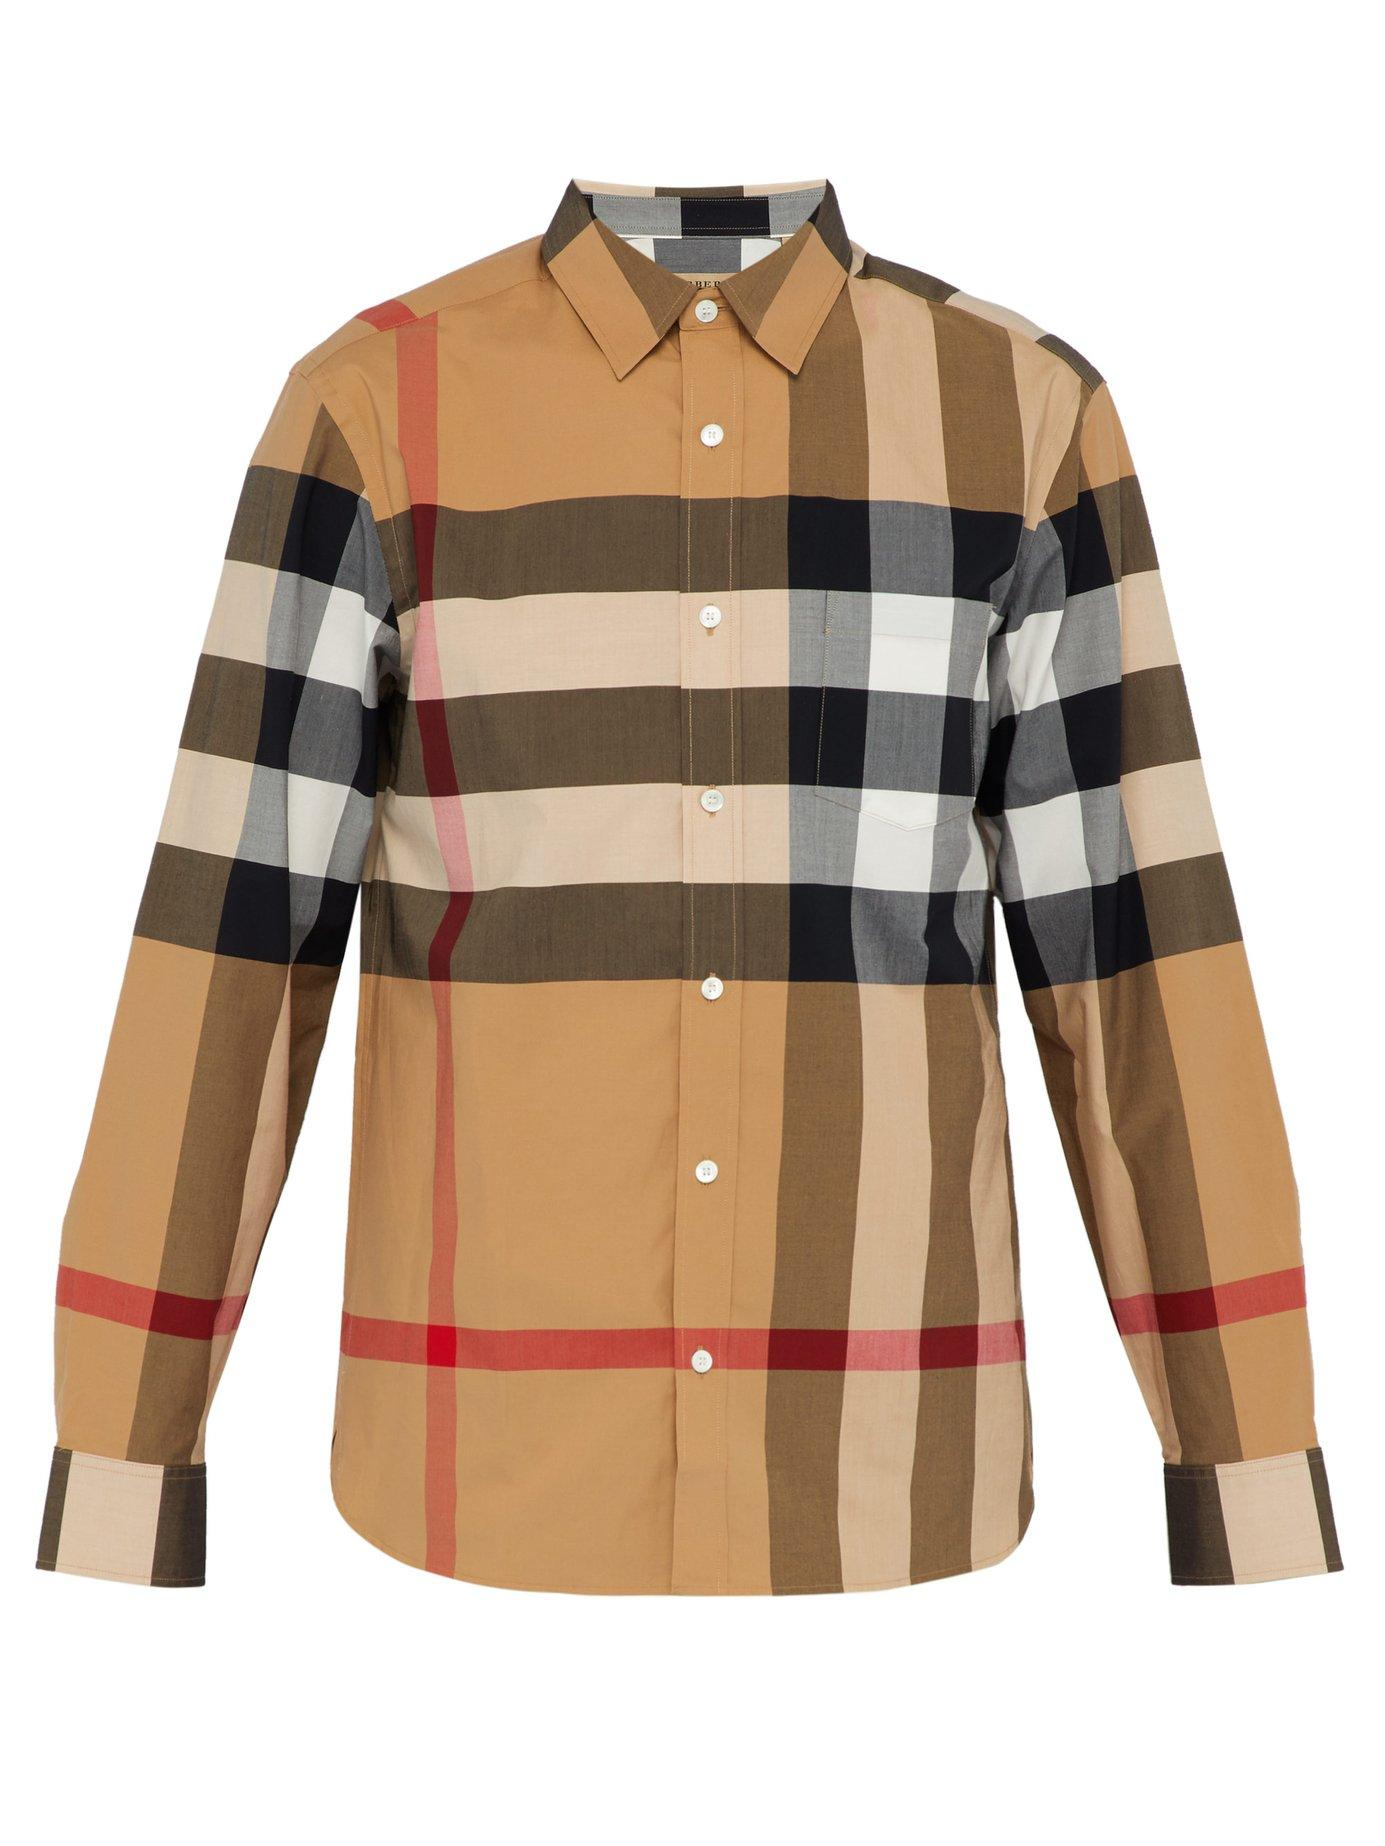 Lyst - Burberry Short-sleeve Check Stretch Cotton Shirt for Men ... 5206eabe02